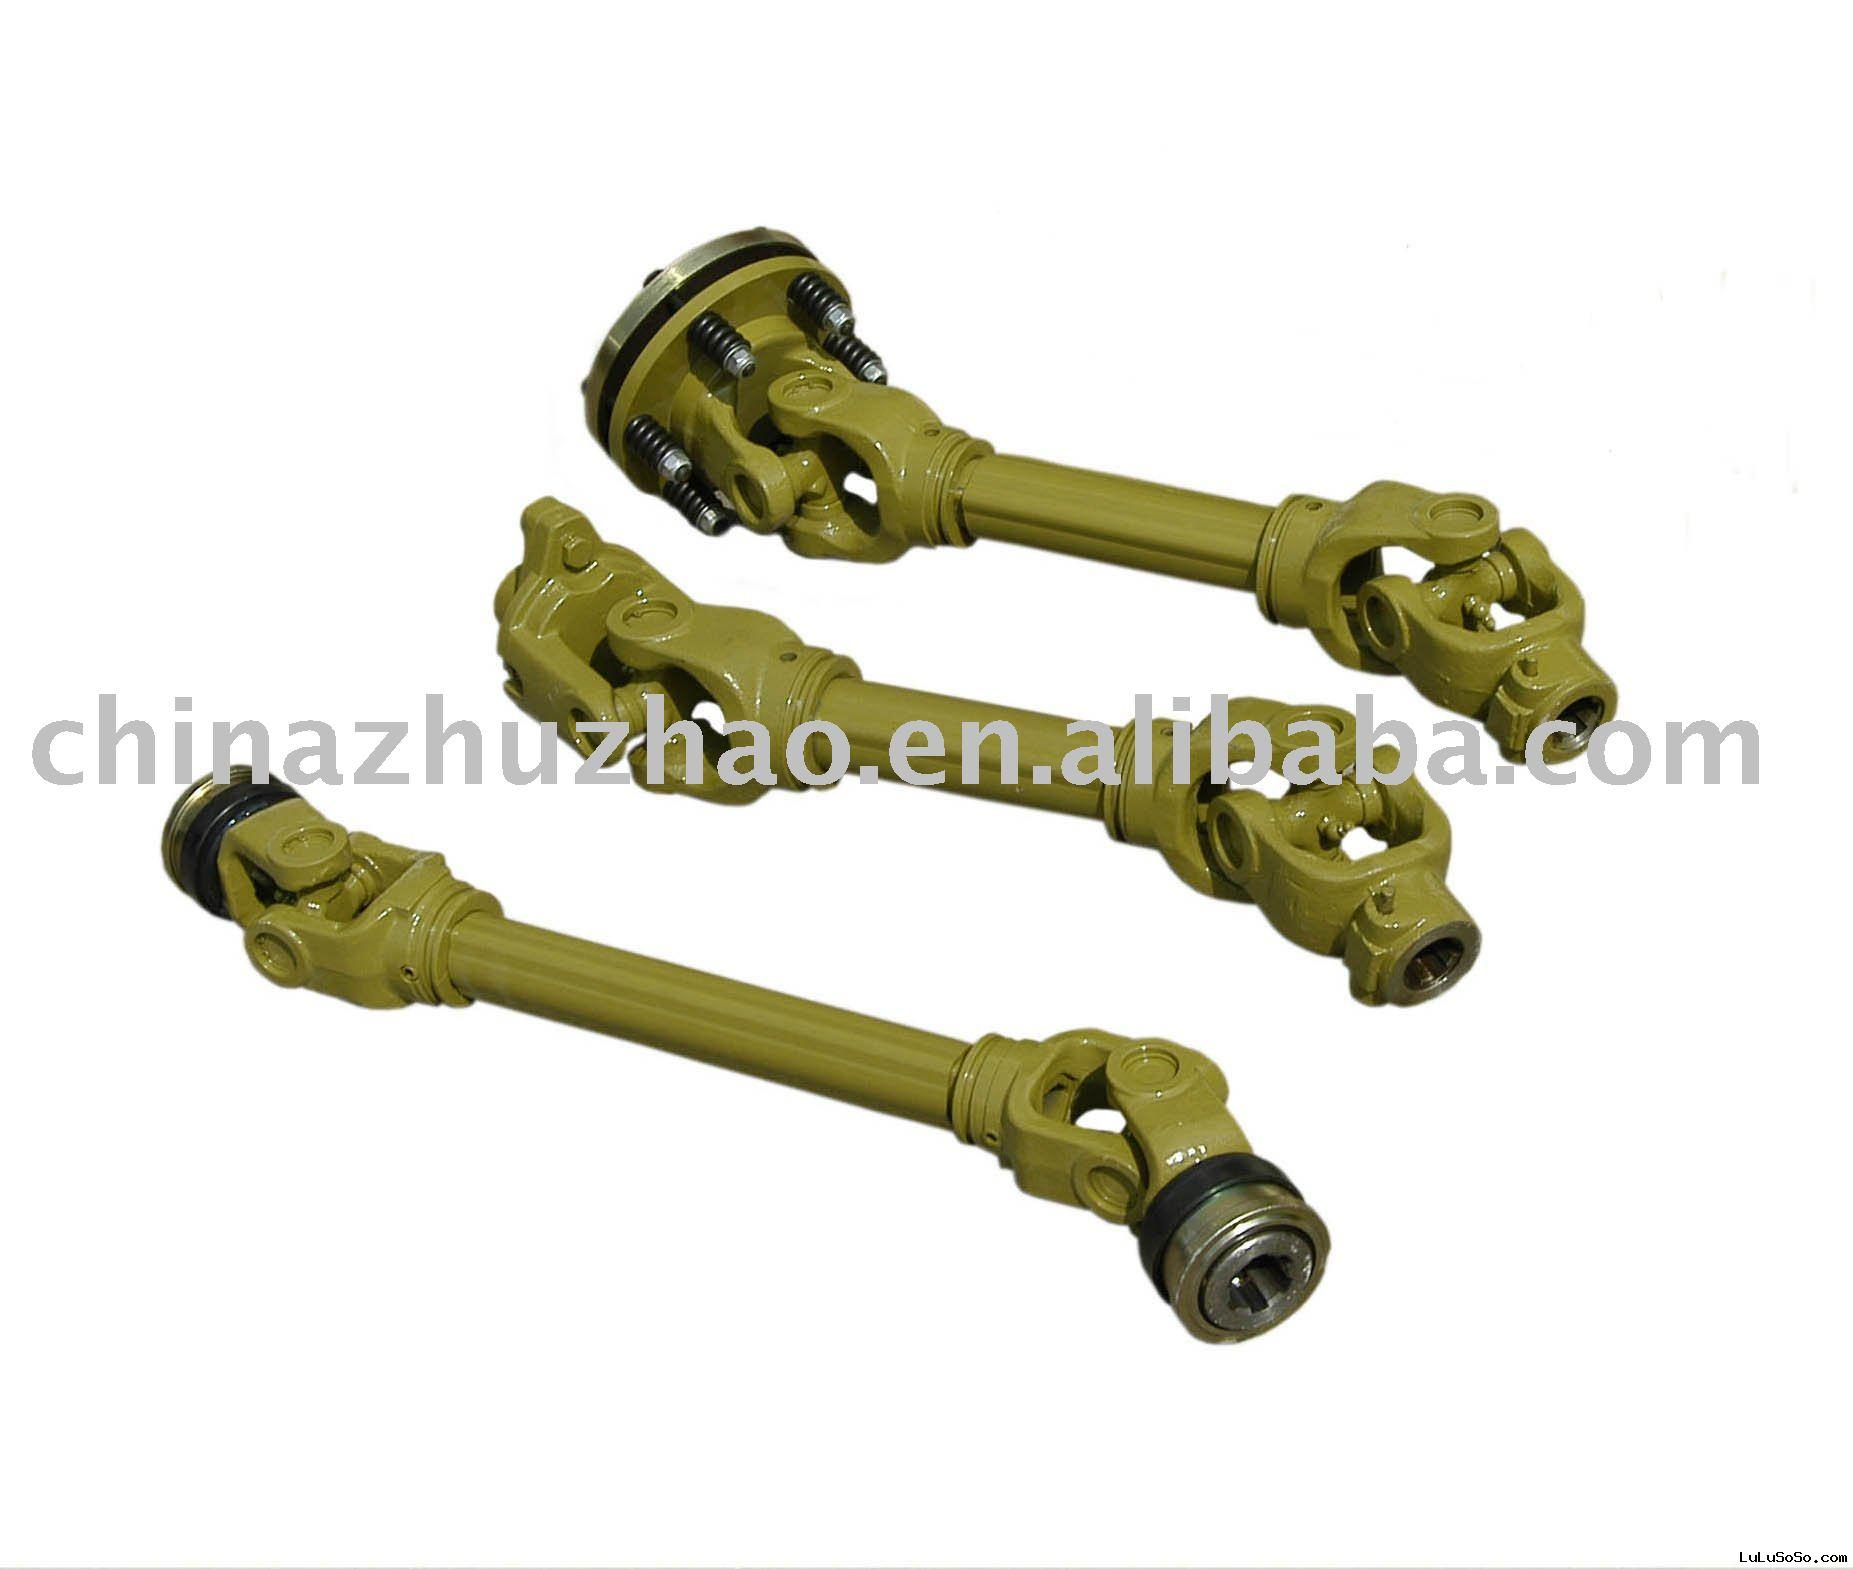 PTO Shaft for Agricultural Machinery